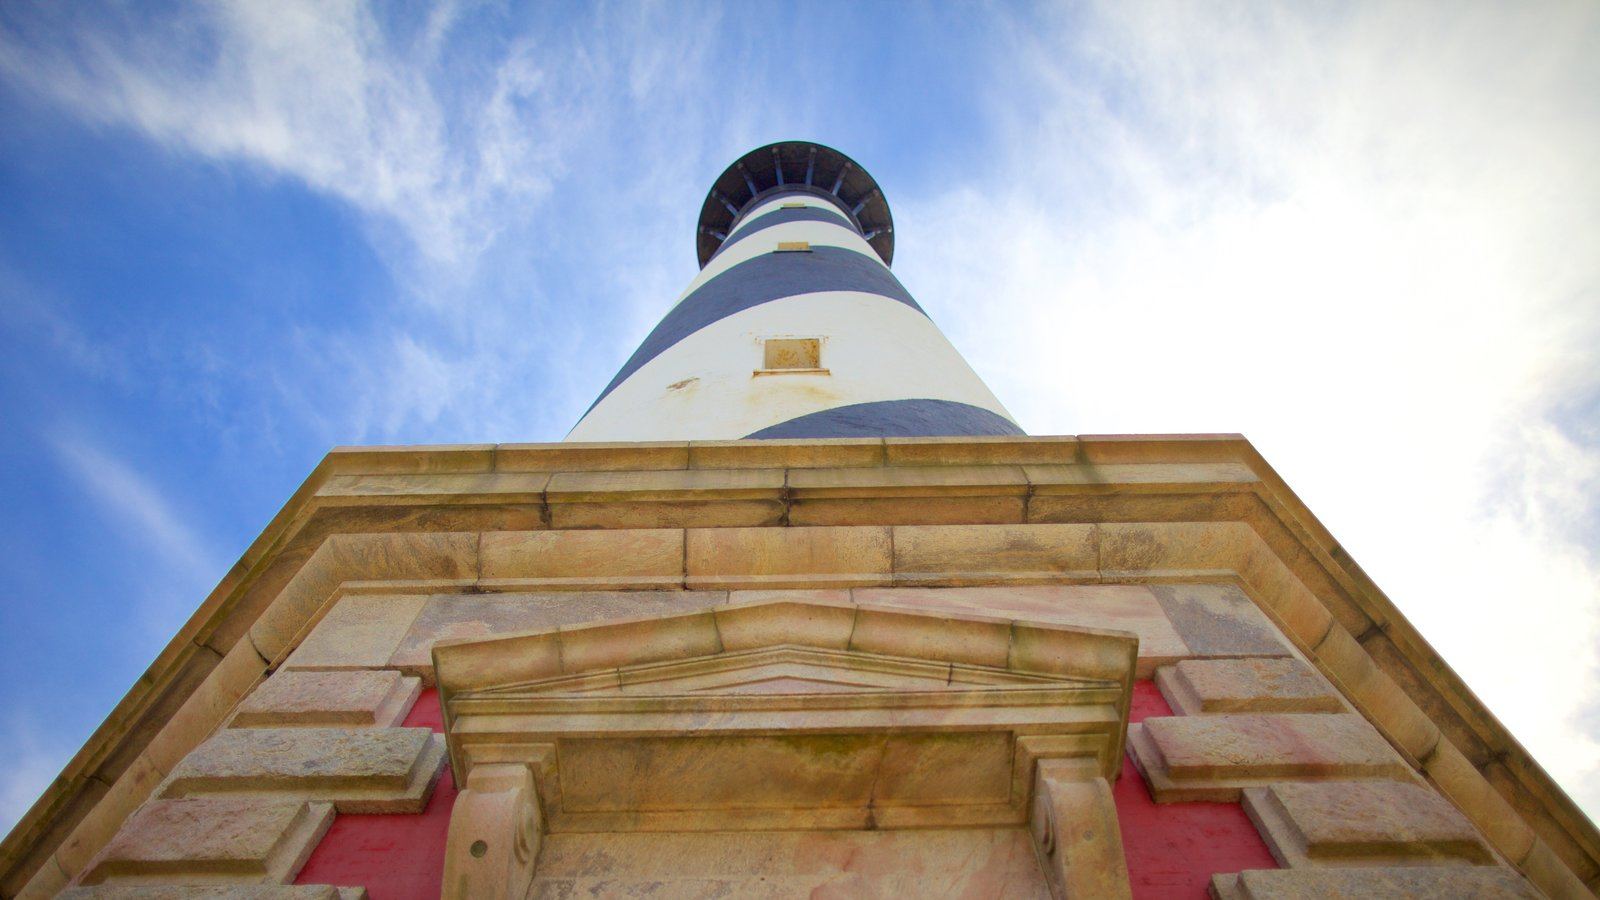 Cape Hatteras Lighthouse featuring a lighthouse